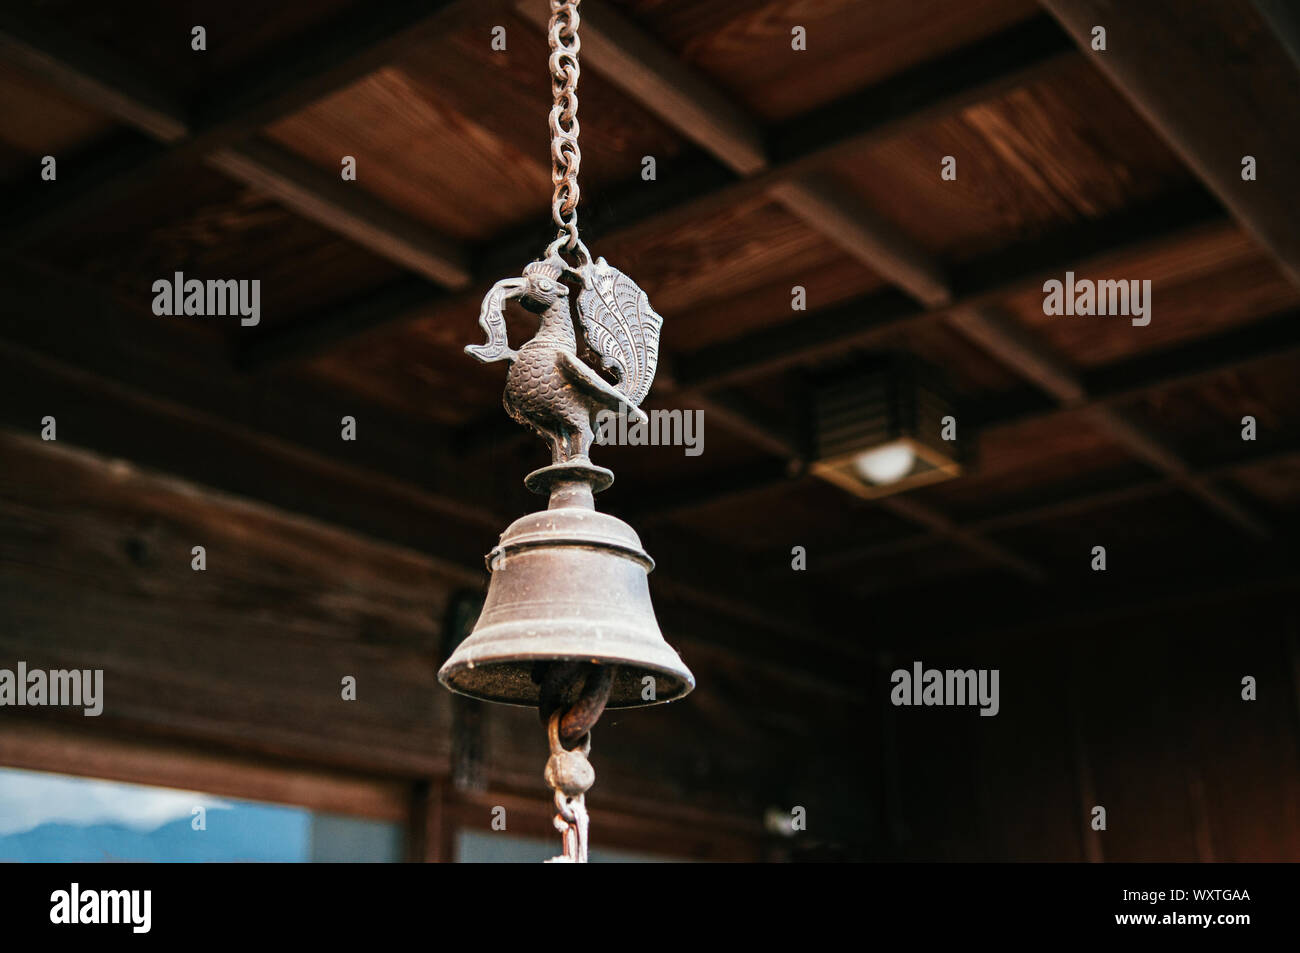 Japanese Buddhist temple or shinto shrine antique bronze bell hanging on metal chain under wooden ceiling. Stock Photo